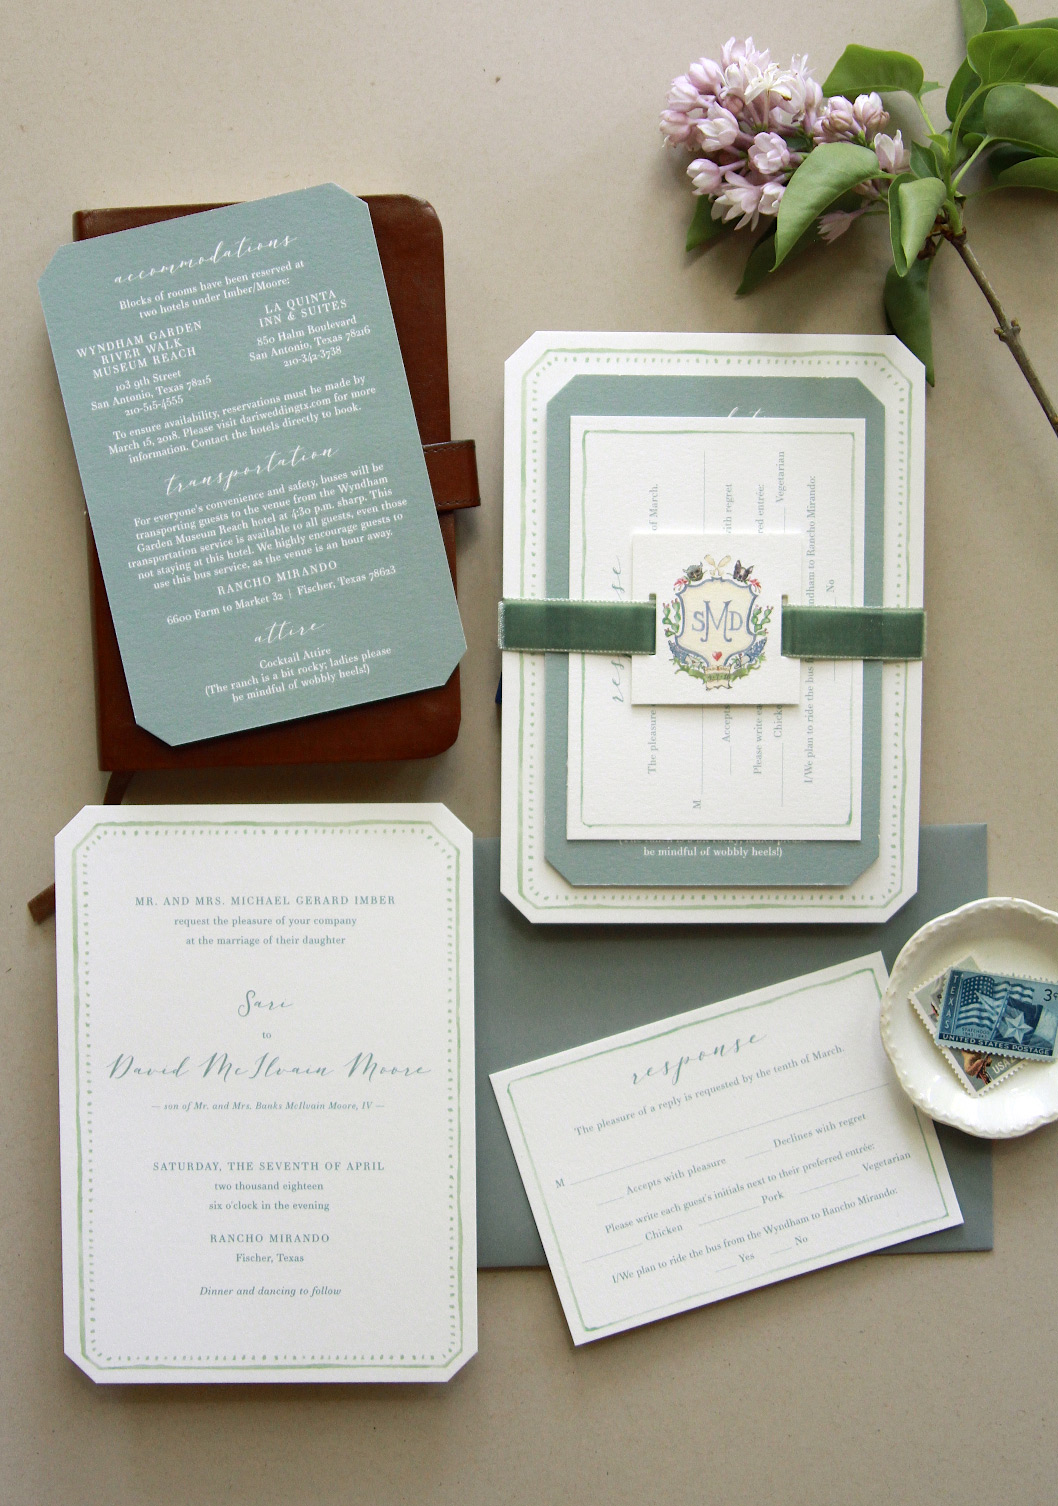 Invitation suite and photo by Michael Musser of  Anticipate Invitations.  Michael's dotted watercolor border perfectly encapsulated the romantic, whimsical feeling I was looking for, and the chamfered edges were the perfect finishing touch.